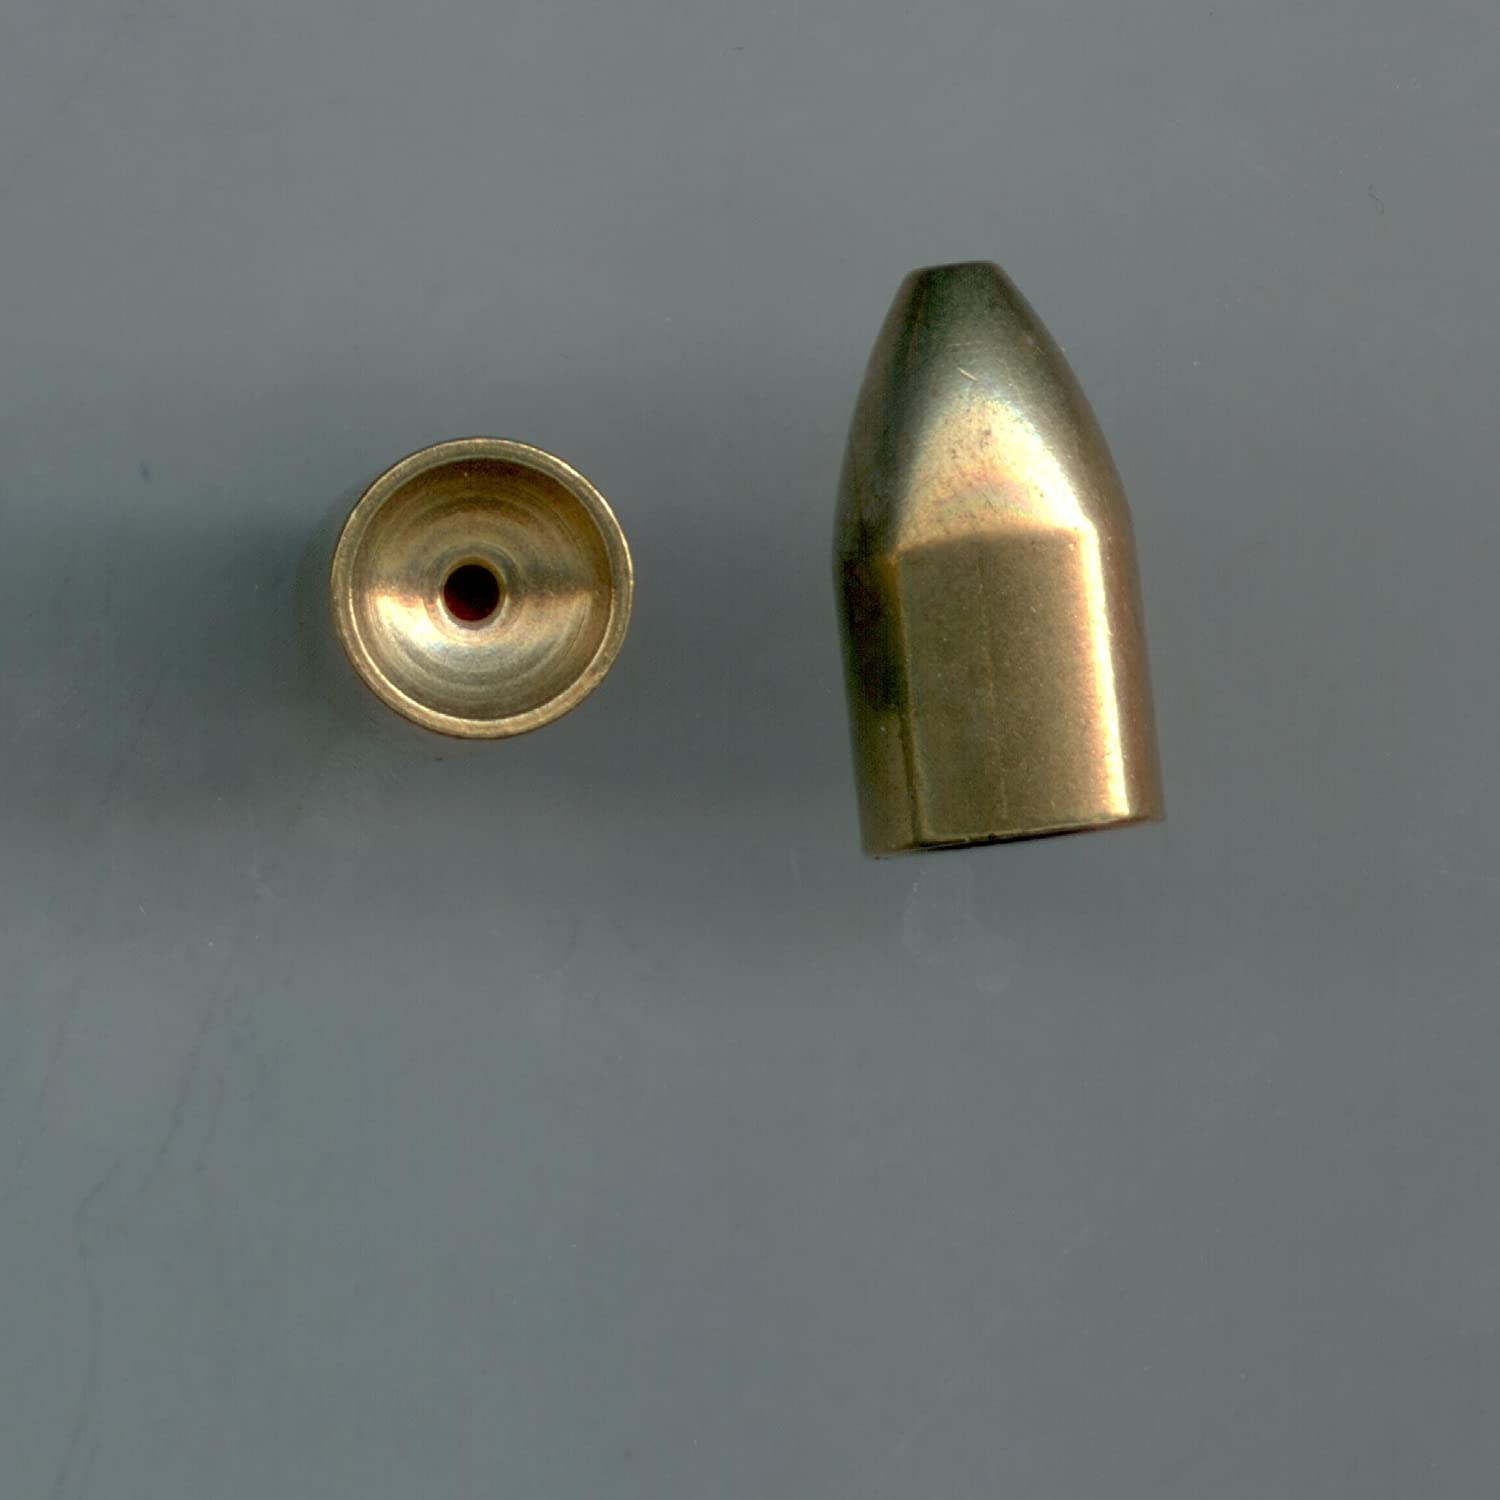 Details about  /RealPlus Fishing Sinkers Kit with 5 Sizes Brass Bullet Weights and Plastic Beads